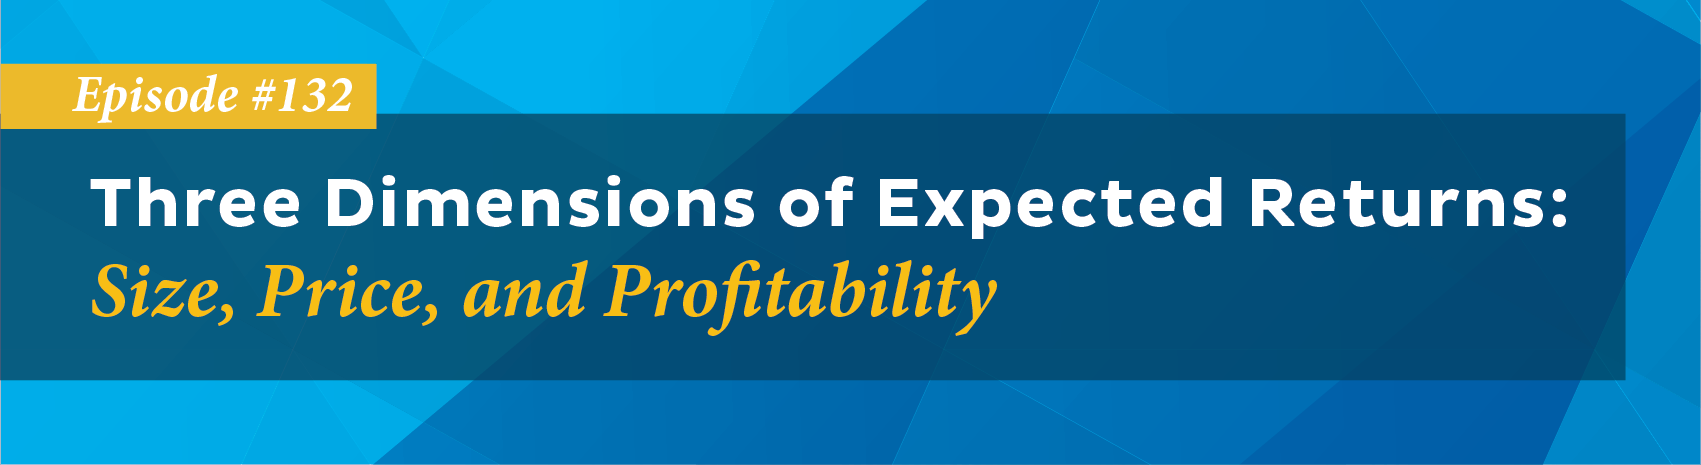 3 Dimensions of Expected Returns: Size, Price and Profitability